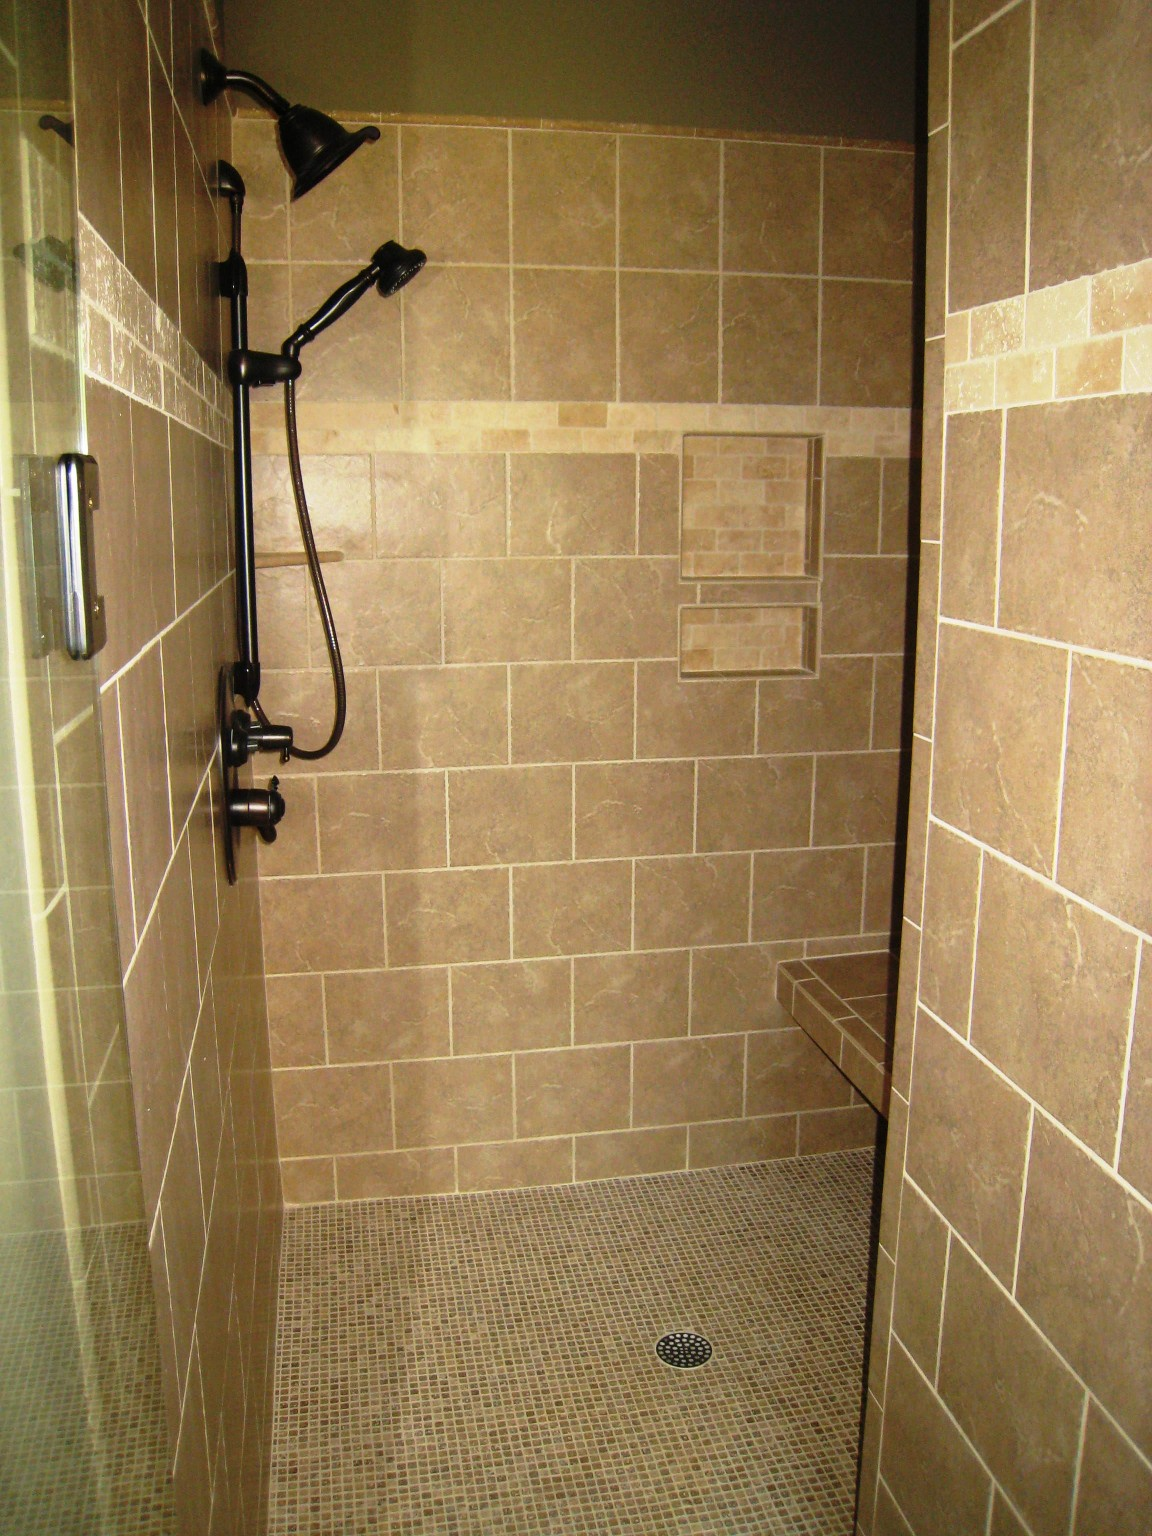 Custom shower and tiling installed by home remodeling company Hedrick Creative Building, LLC in Lexington, NC